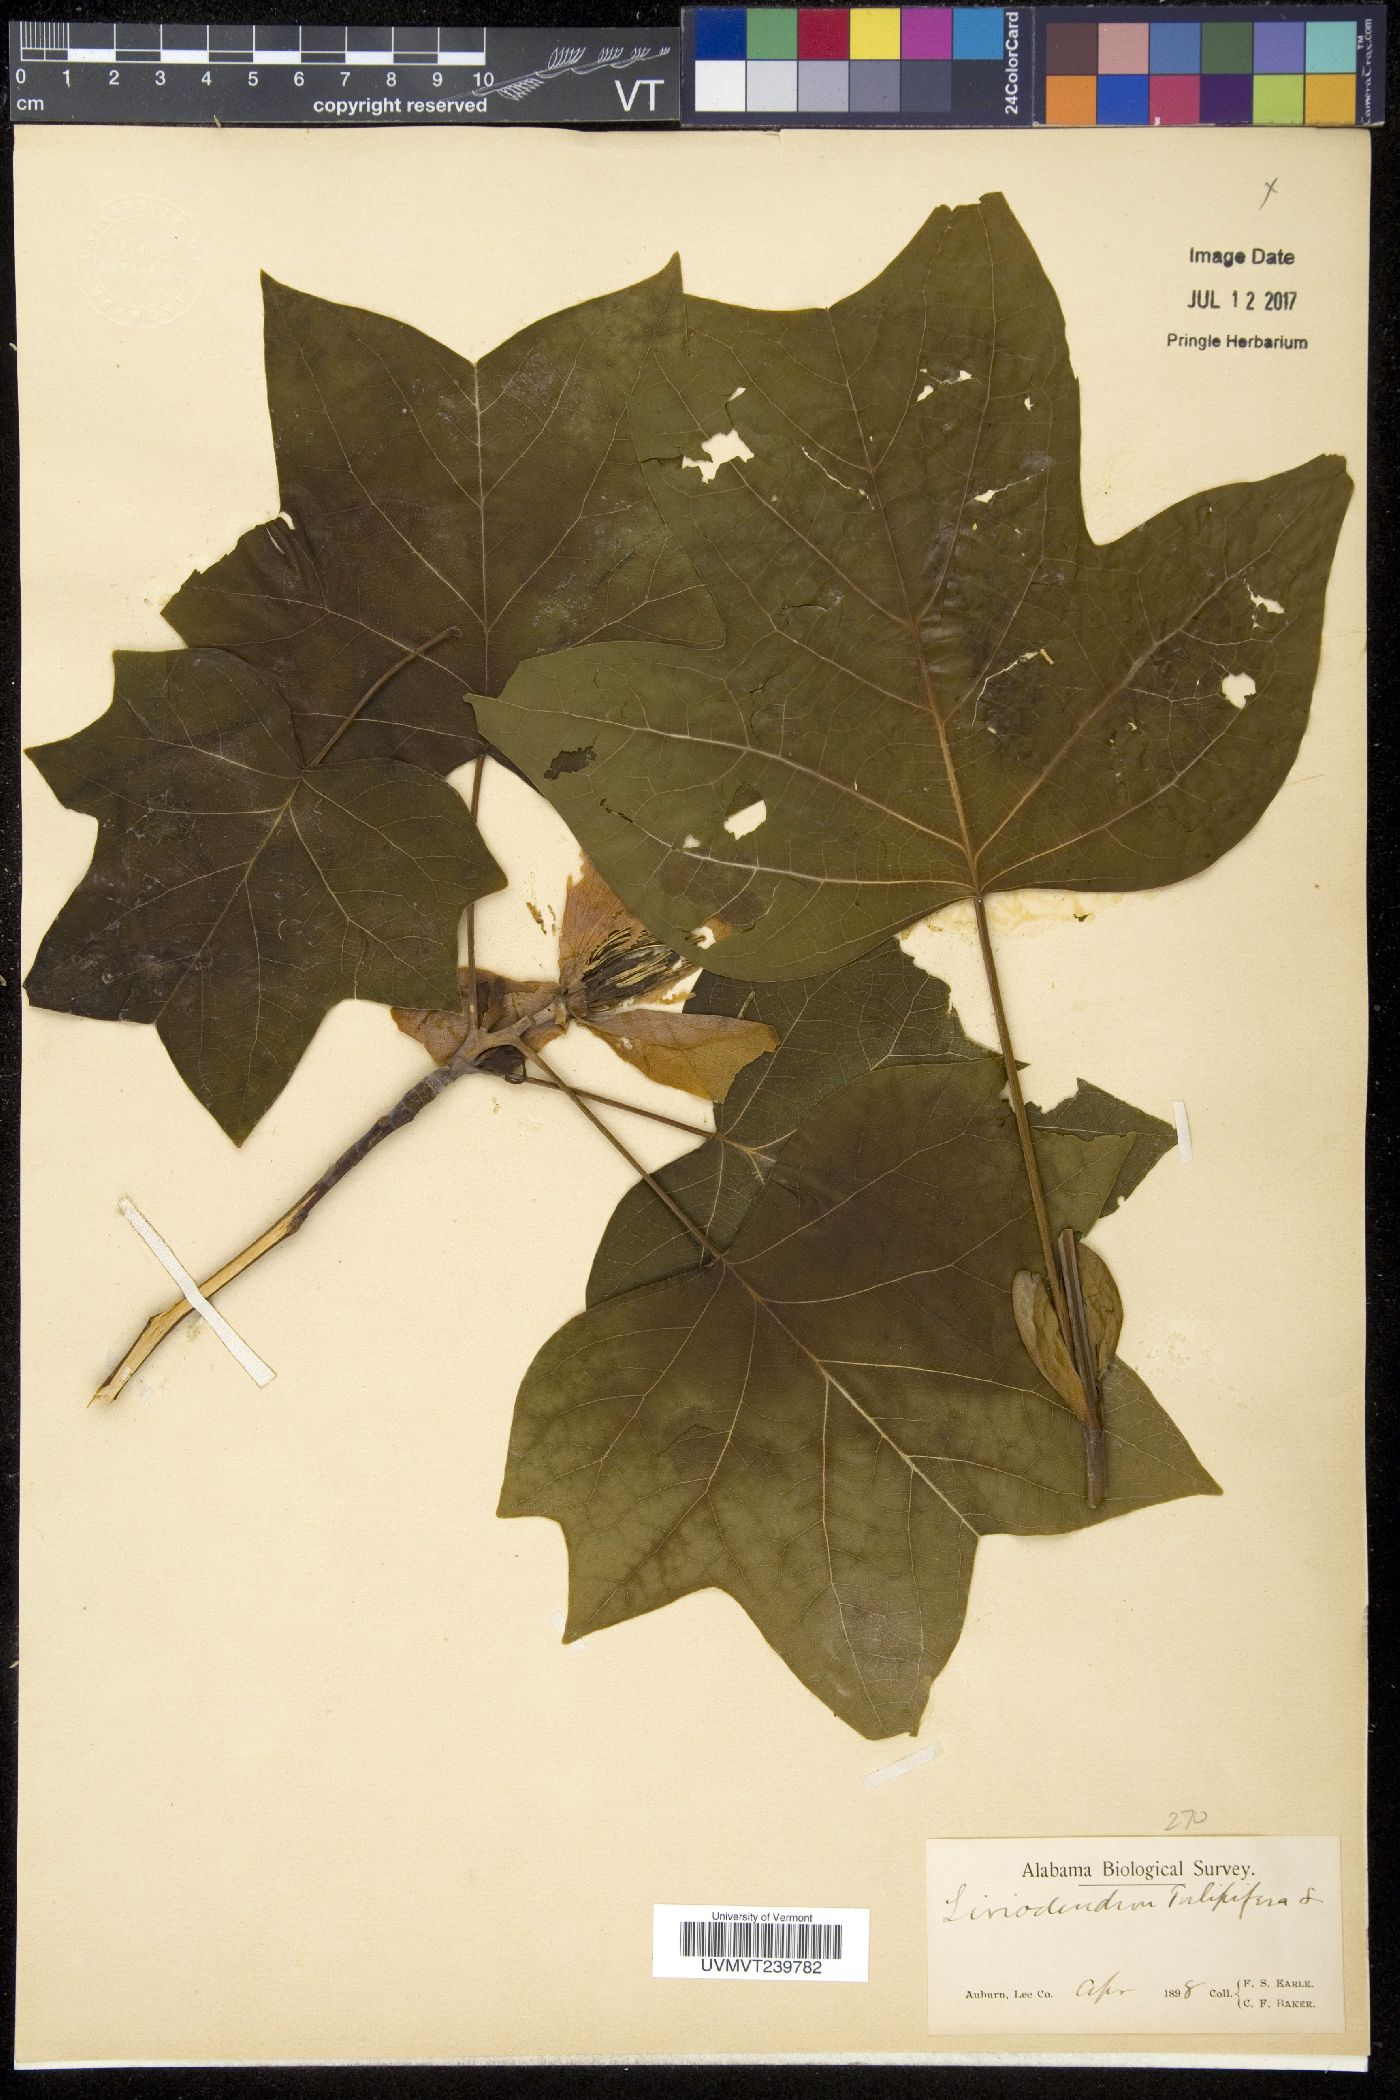 Linodendron image